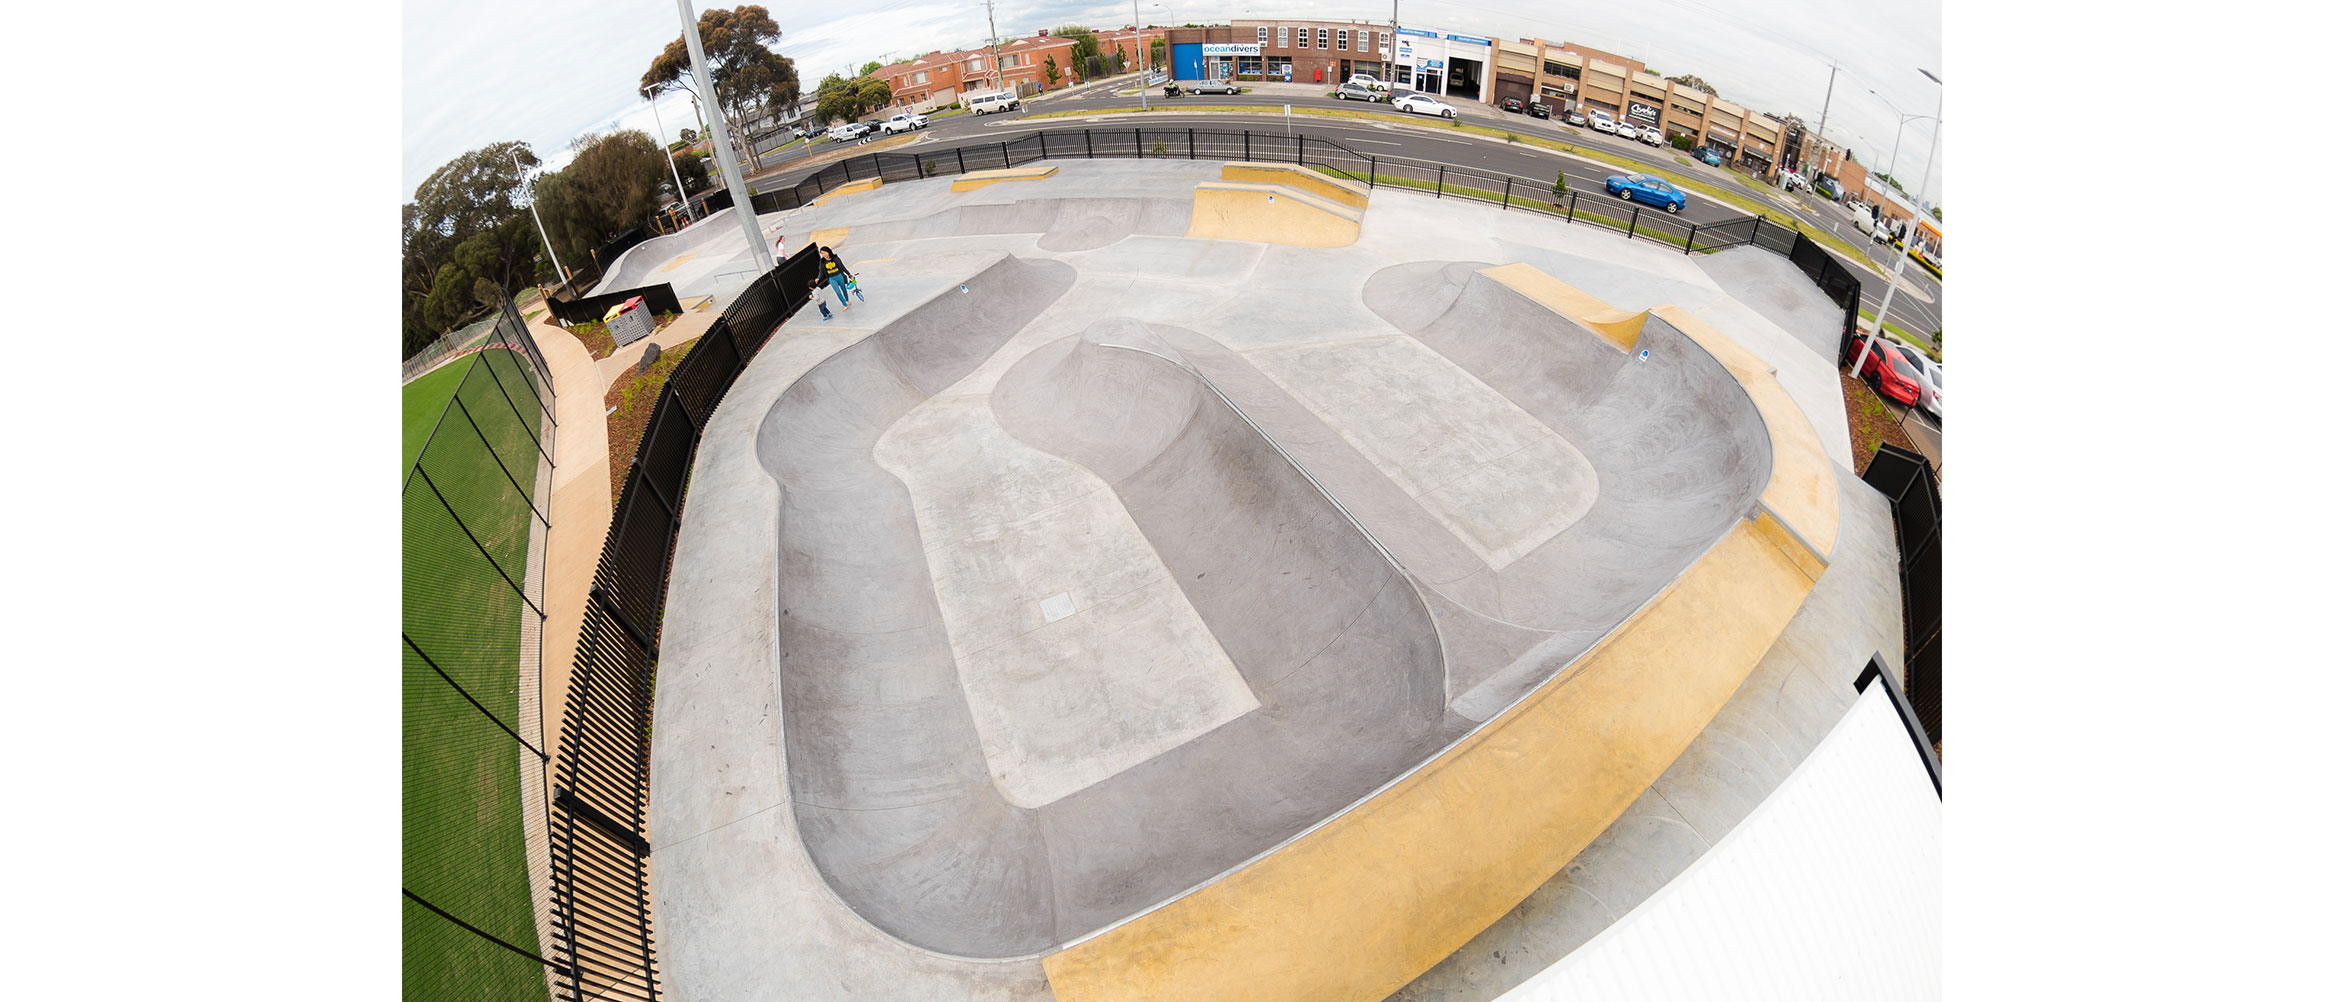 Bentleigh East skate park bowl over view